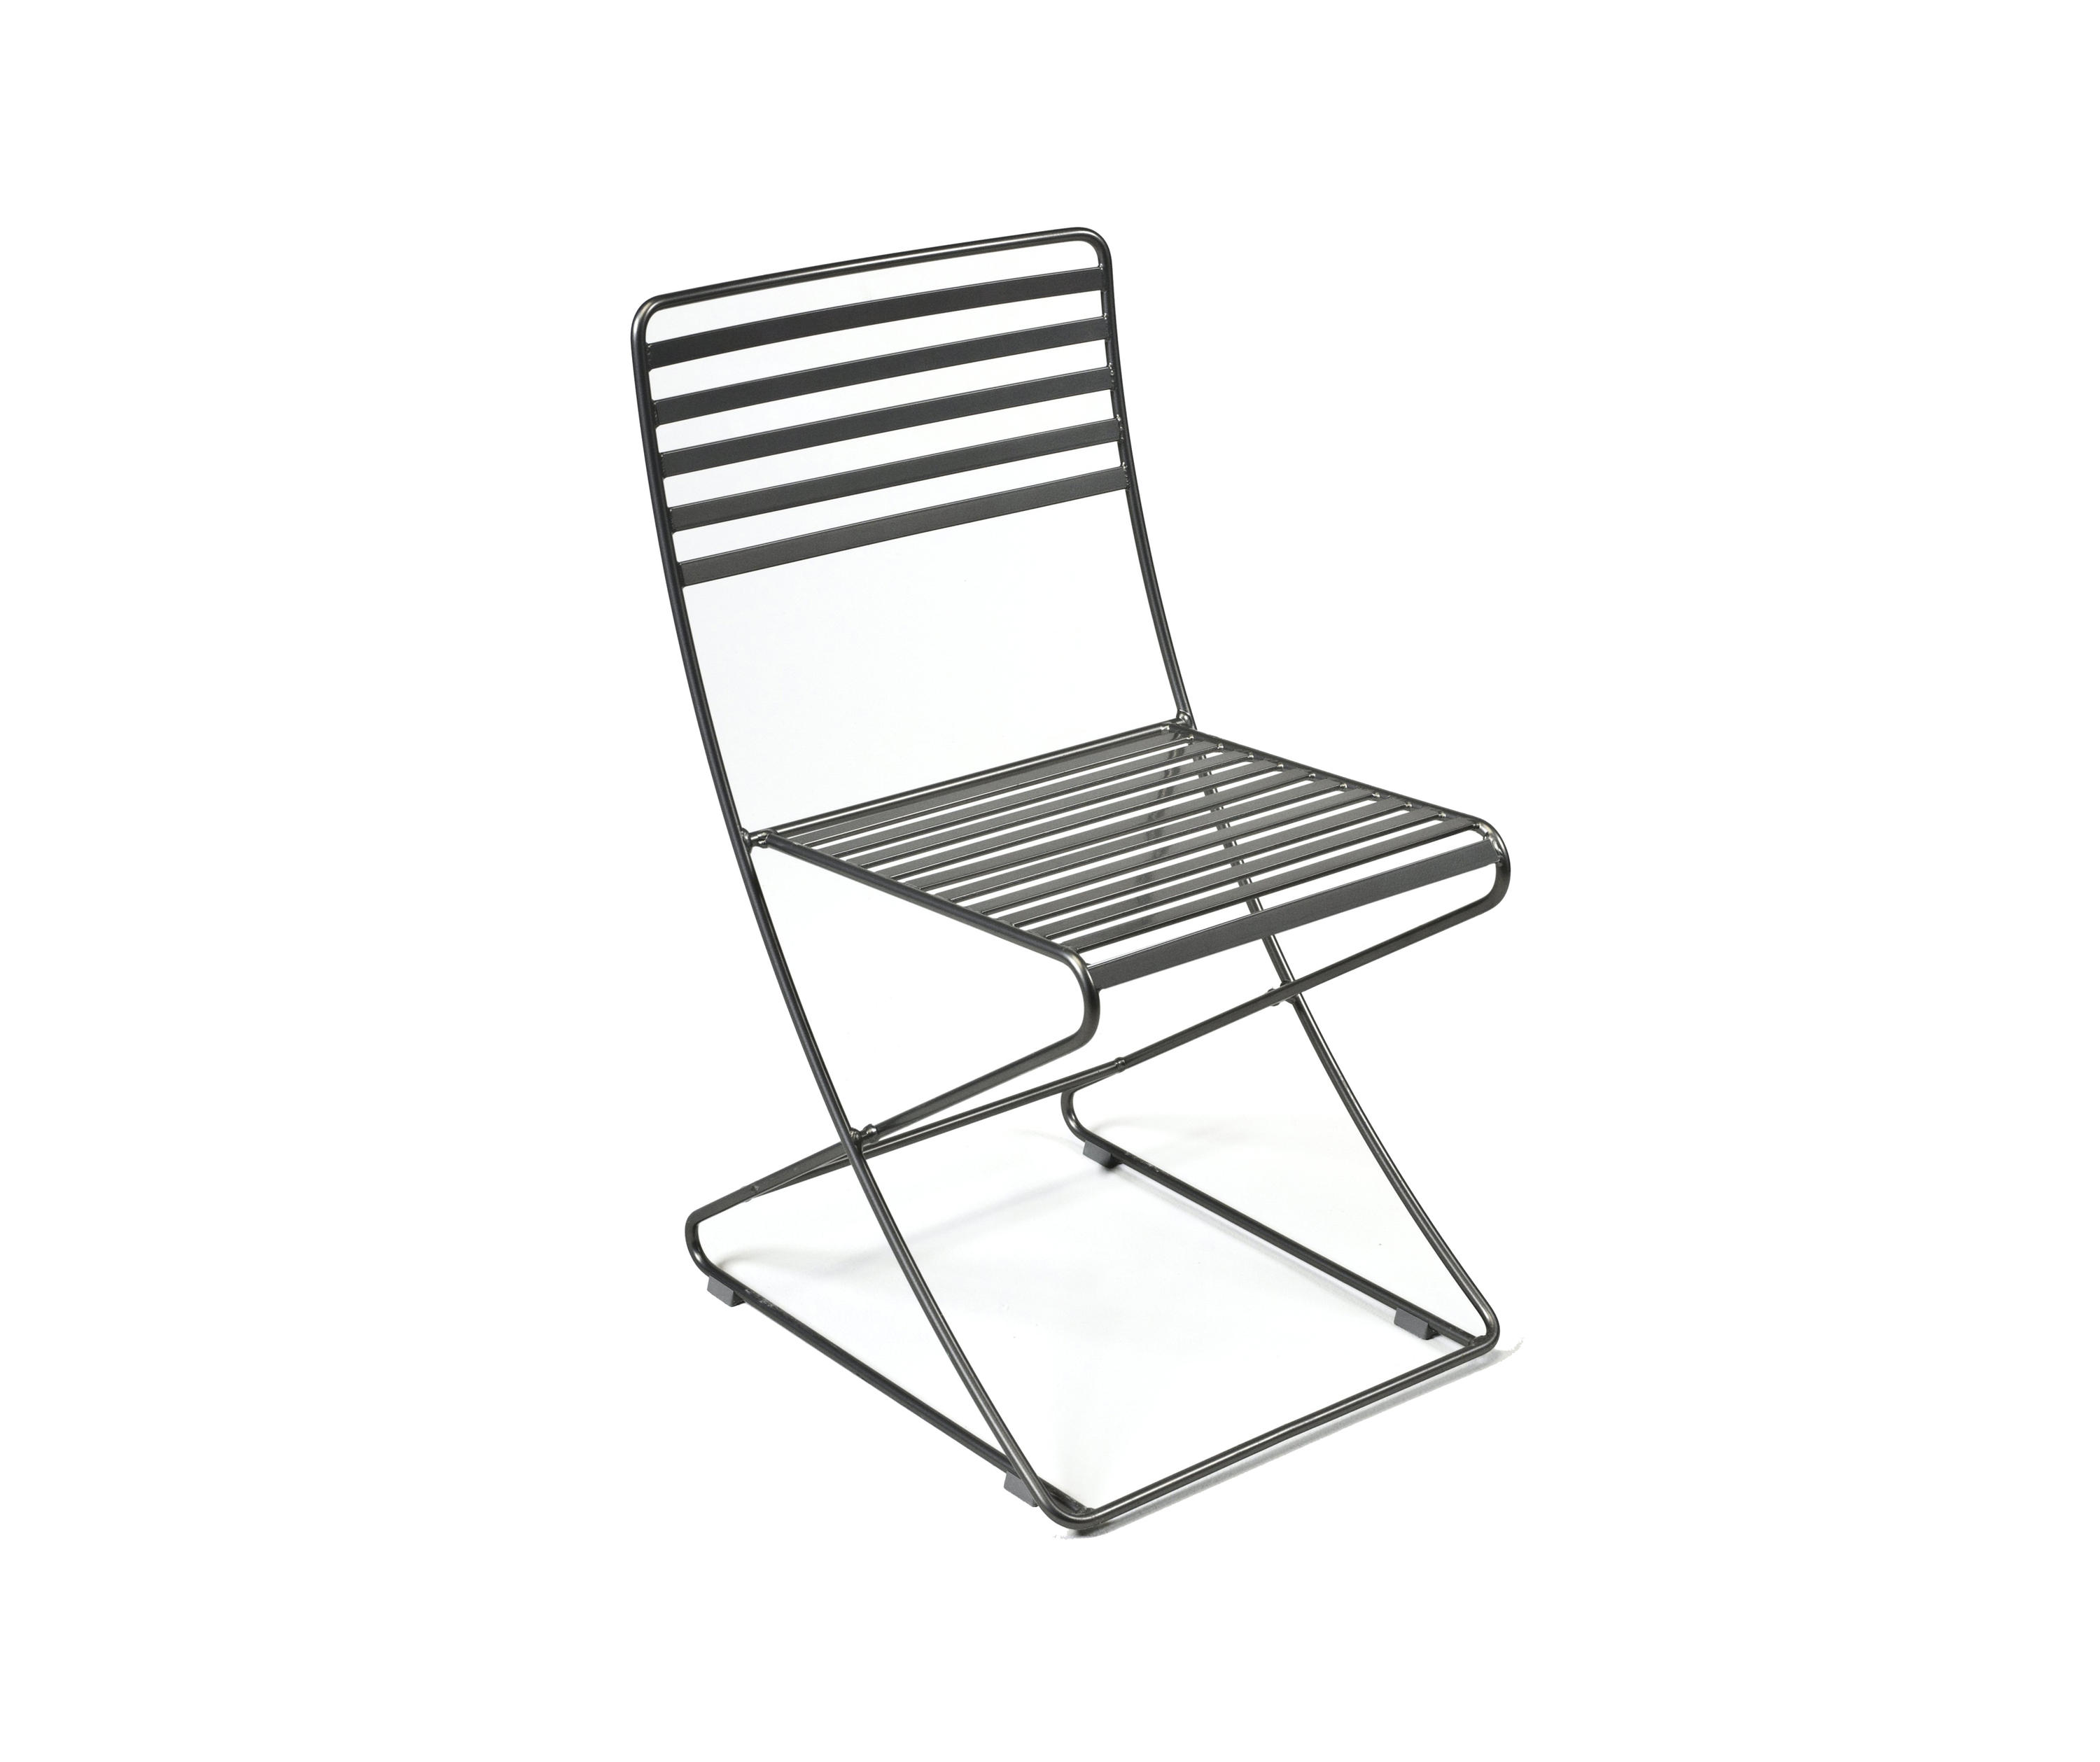 parc centre chair no arms chairs from landscape forms architonic